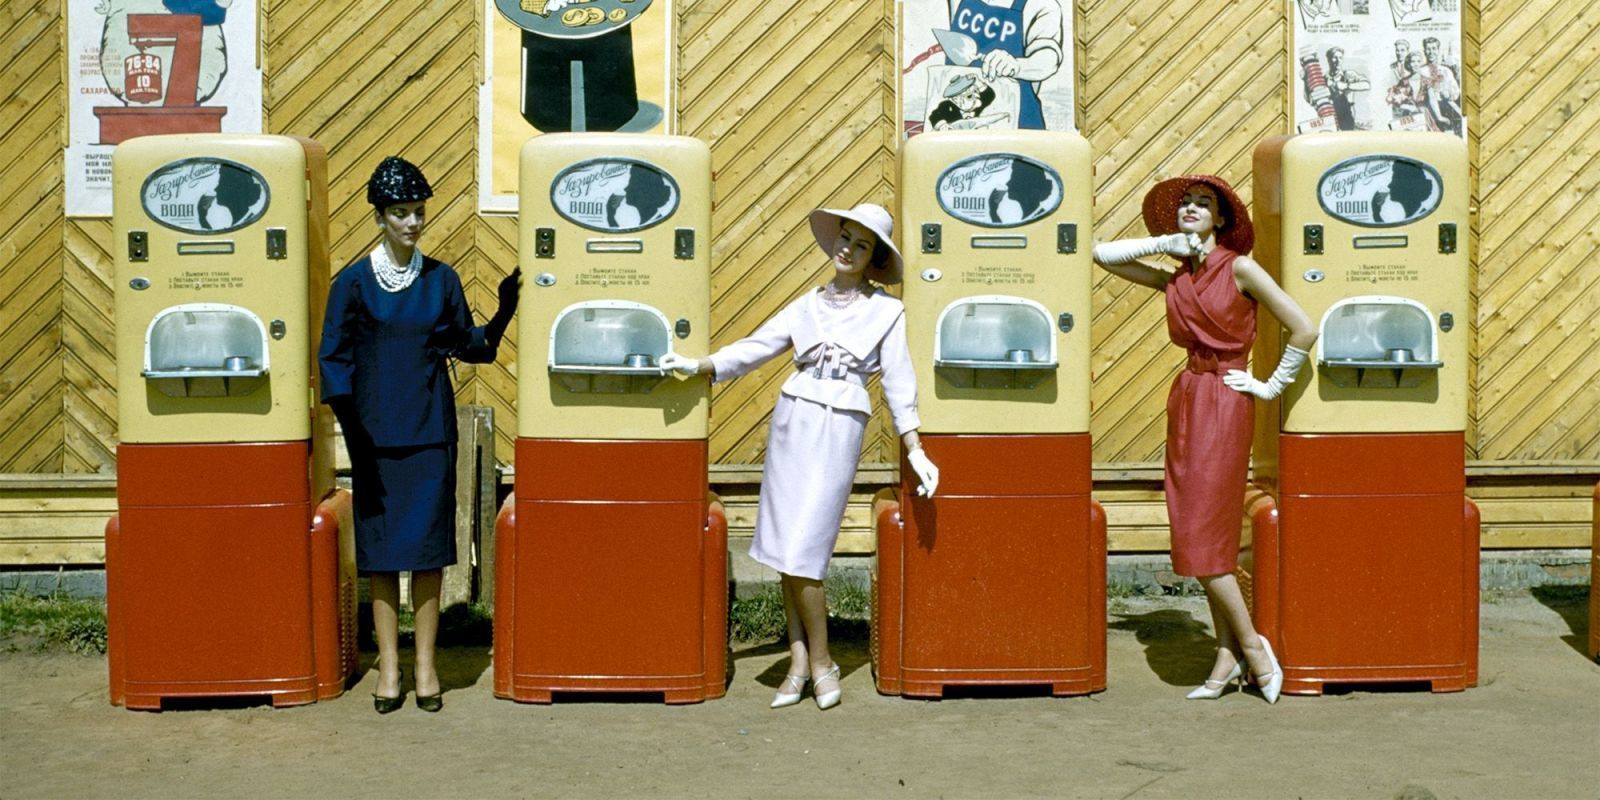 In Photos: The Best of 1950s Fashion